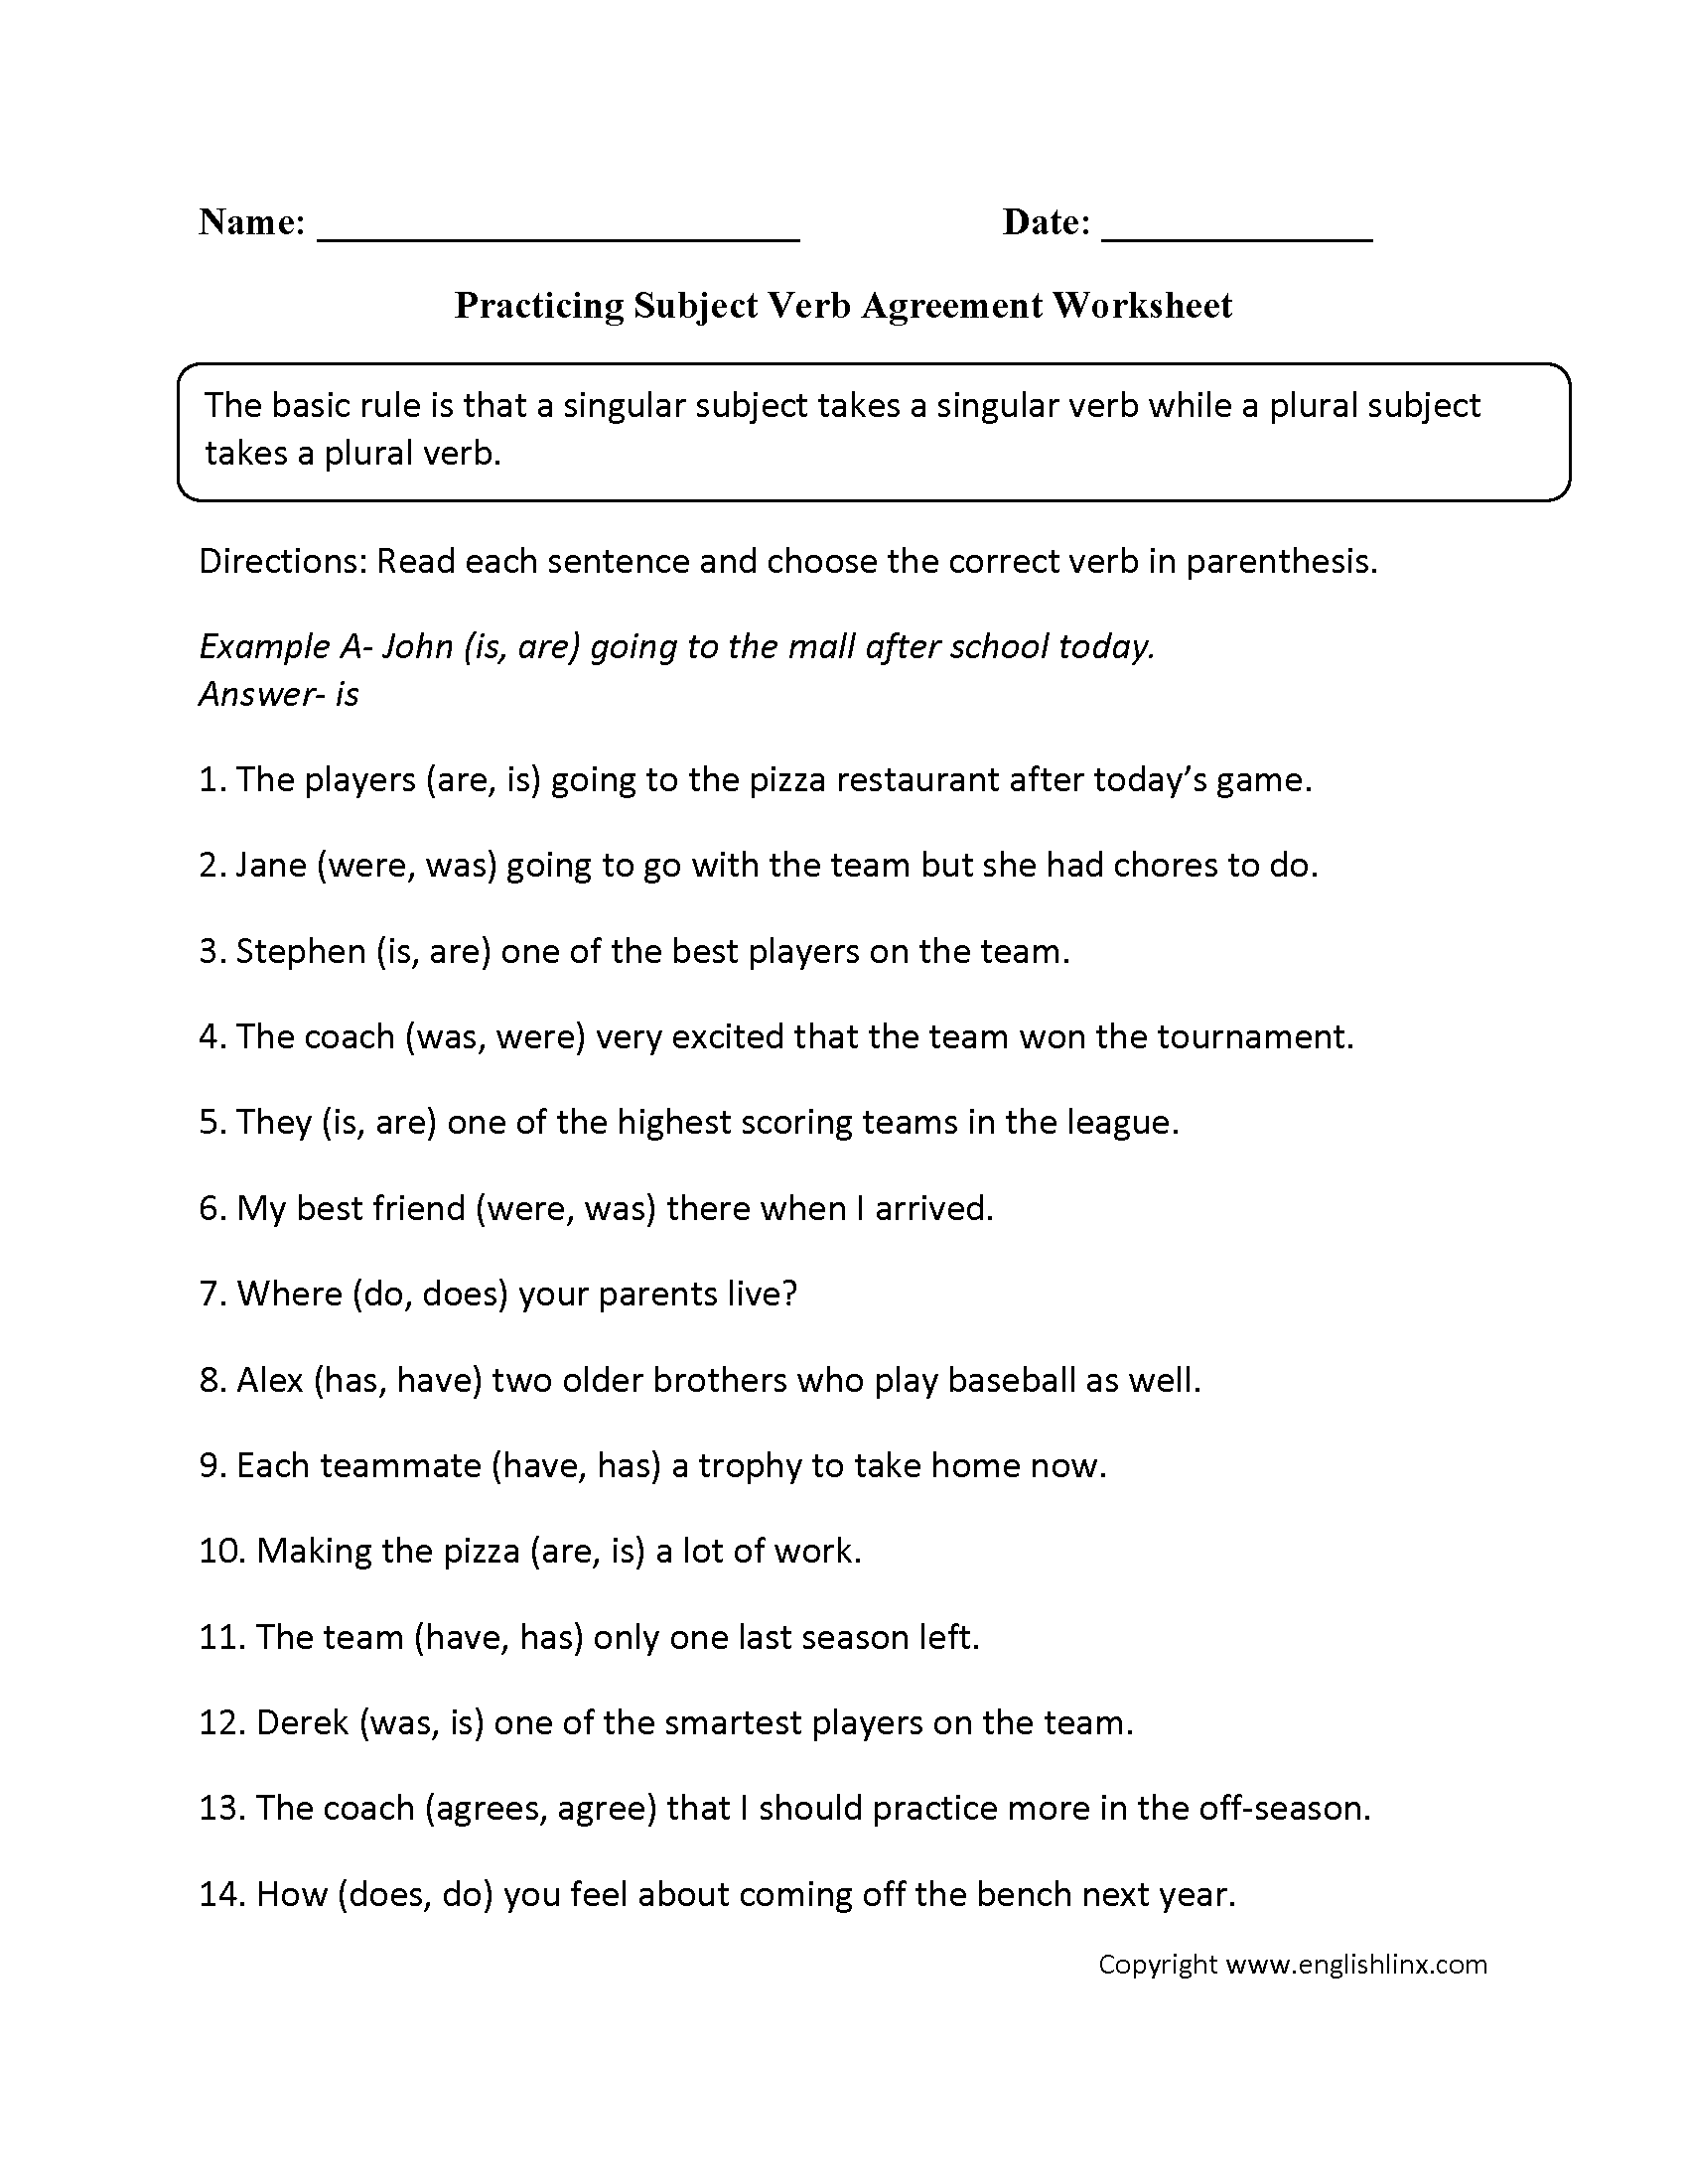 worksheet. Verb Worksheets 3rd Grade. Grass Fedjp Worksheet Study Site